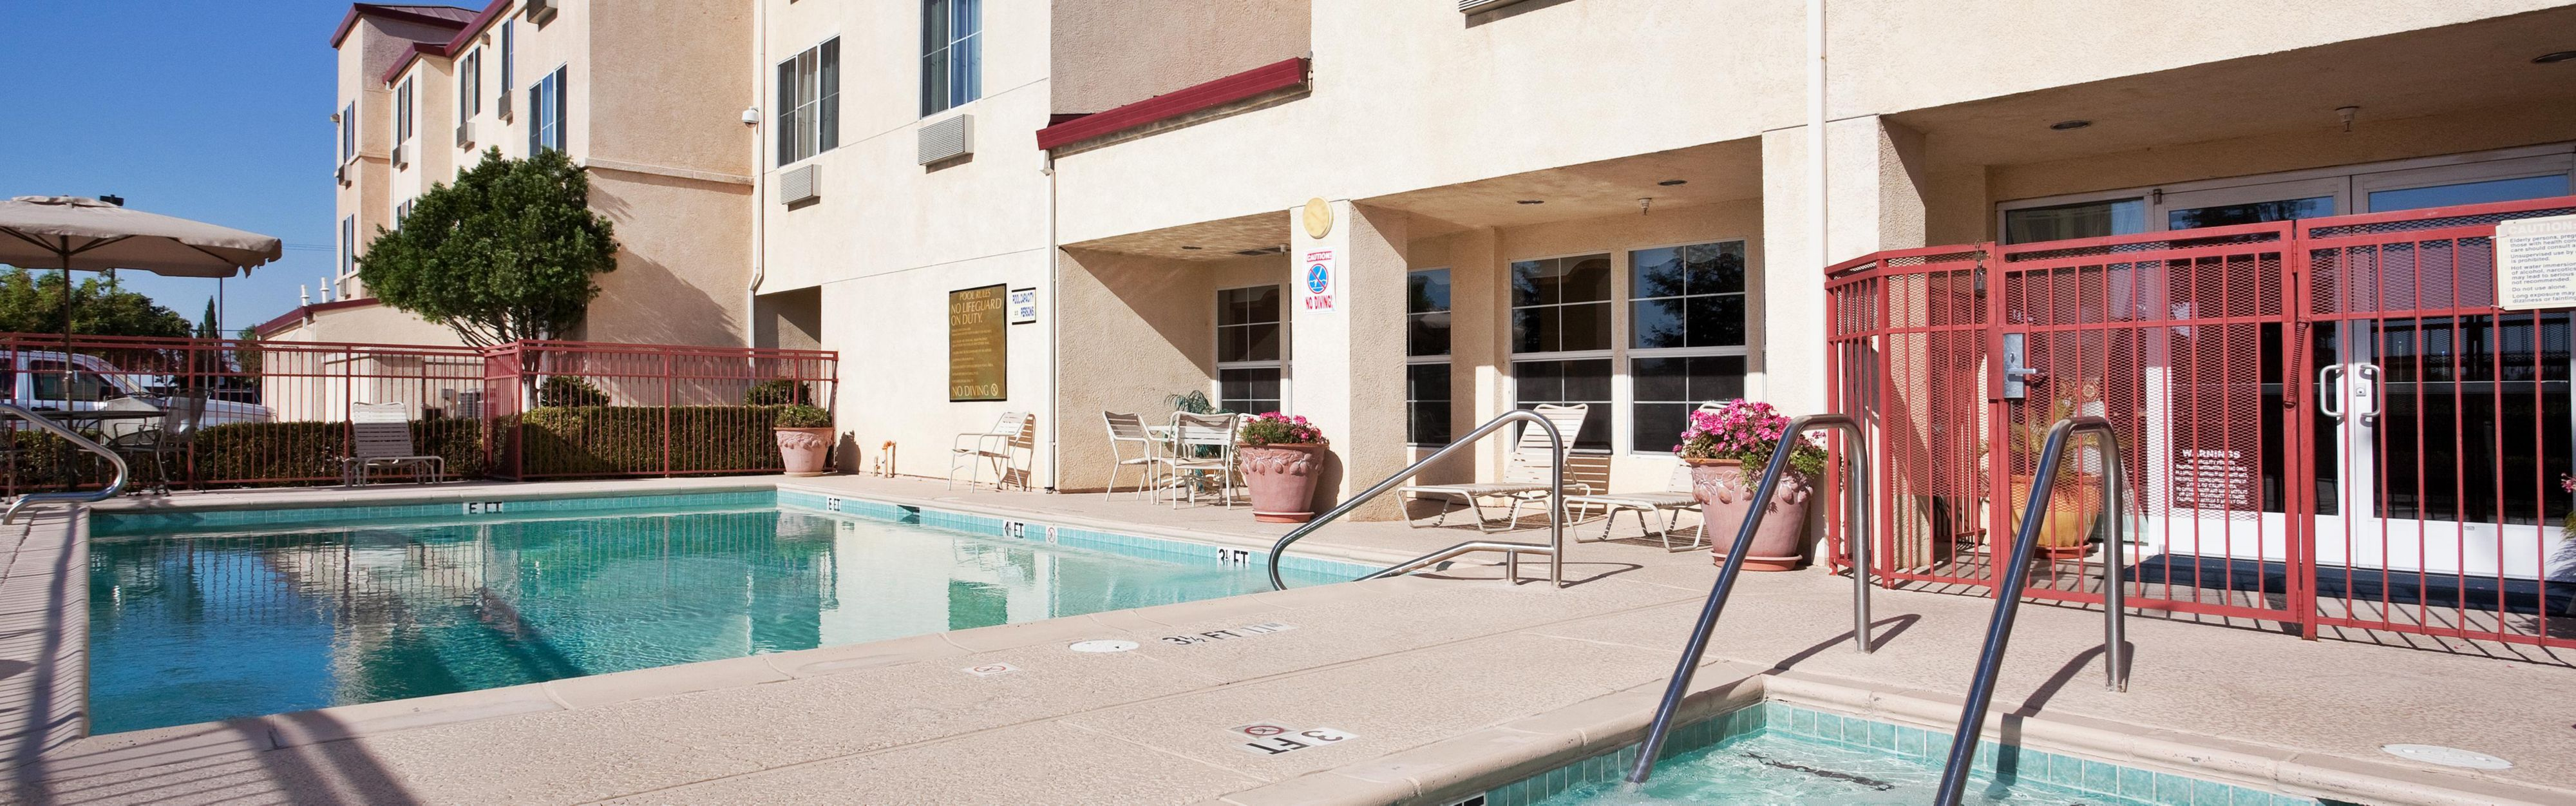 Holiday Inn Express & Suites Tracy image 2